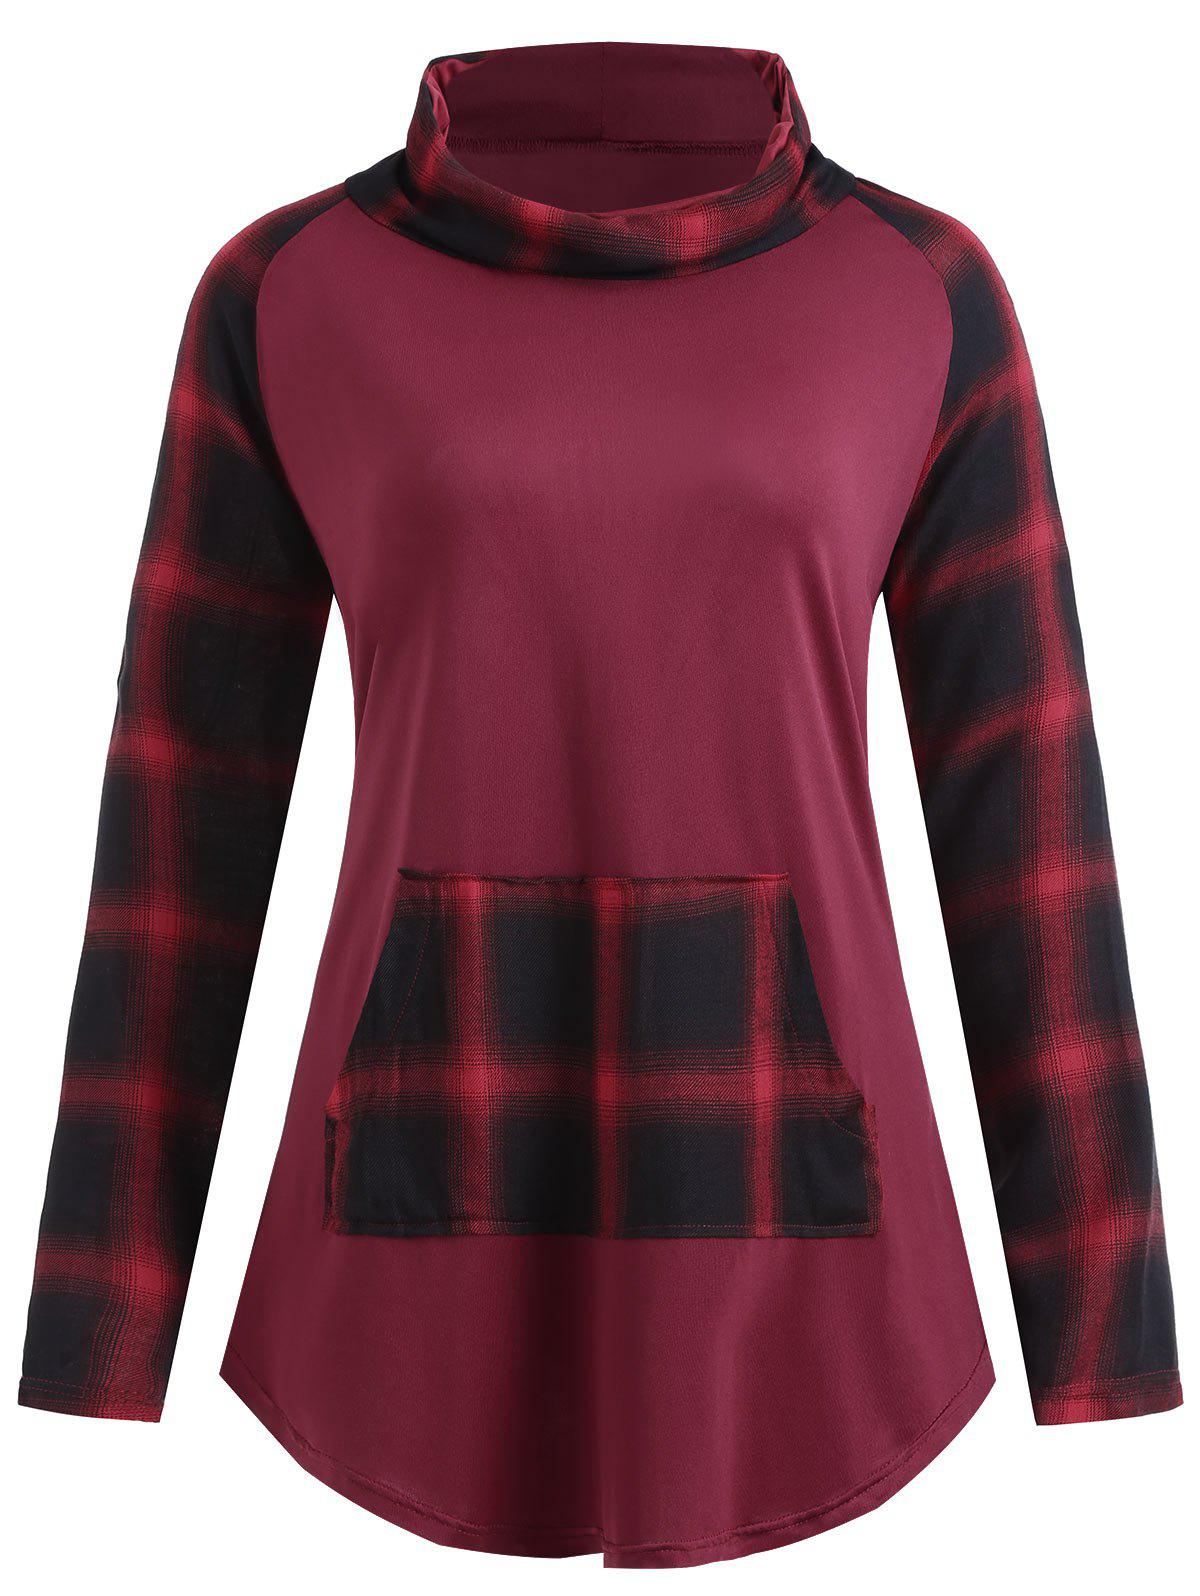 Plus Size Turtleneck Plaid Panel TeeWOMEN<br><br>Size: 2XL; Color: WINE RED; Material: Cotton,Polyester; Shirt Length: Regular; Sleeve Length: Full; Collar: Turtleneck; Style: Fashion; Season: Fall; Sleeve Type: Raglan Sleeve; Embellishment: Front Pocket,Panel; Pattern Type: Plaid; Weight: 0.2700kg; Package Contents: 1 x T-shirt;